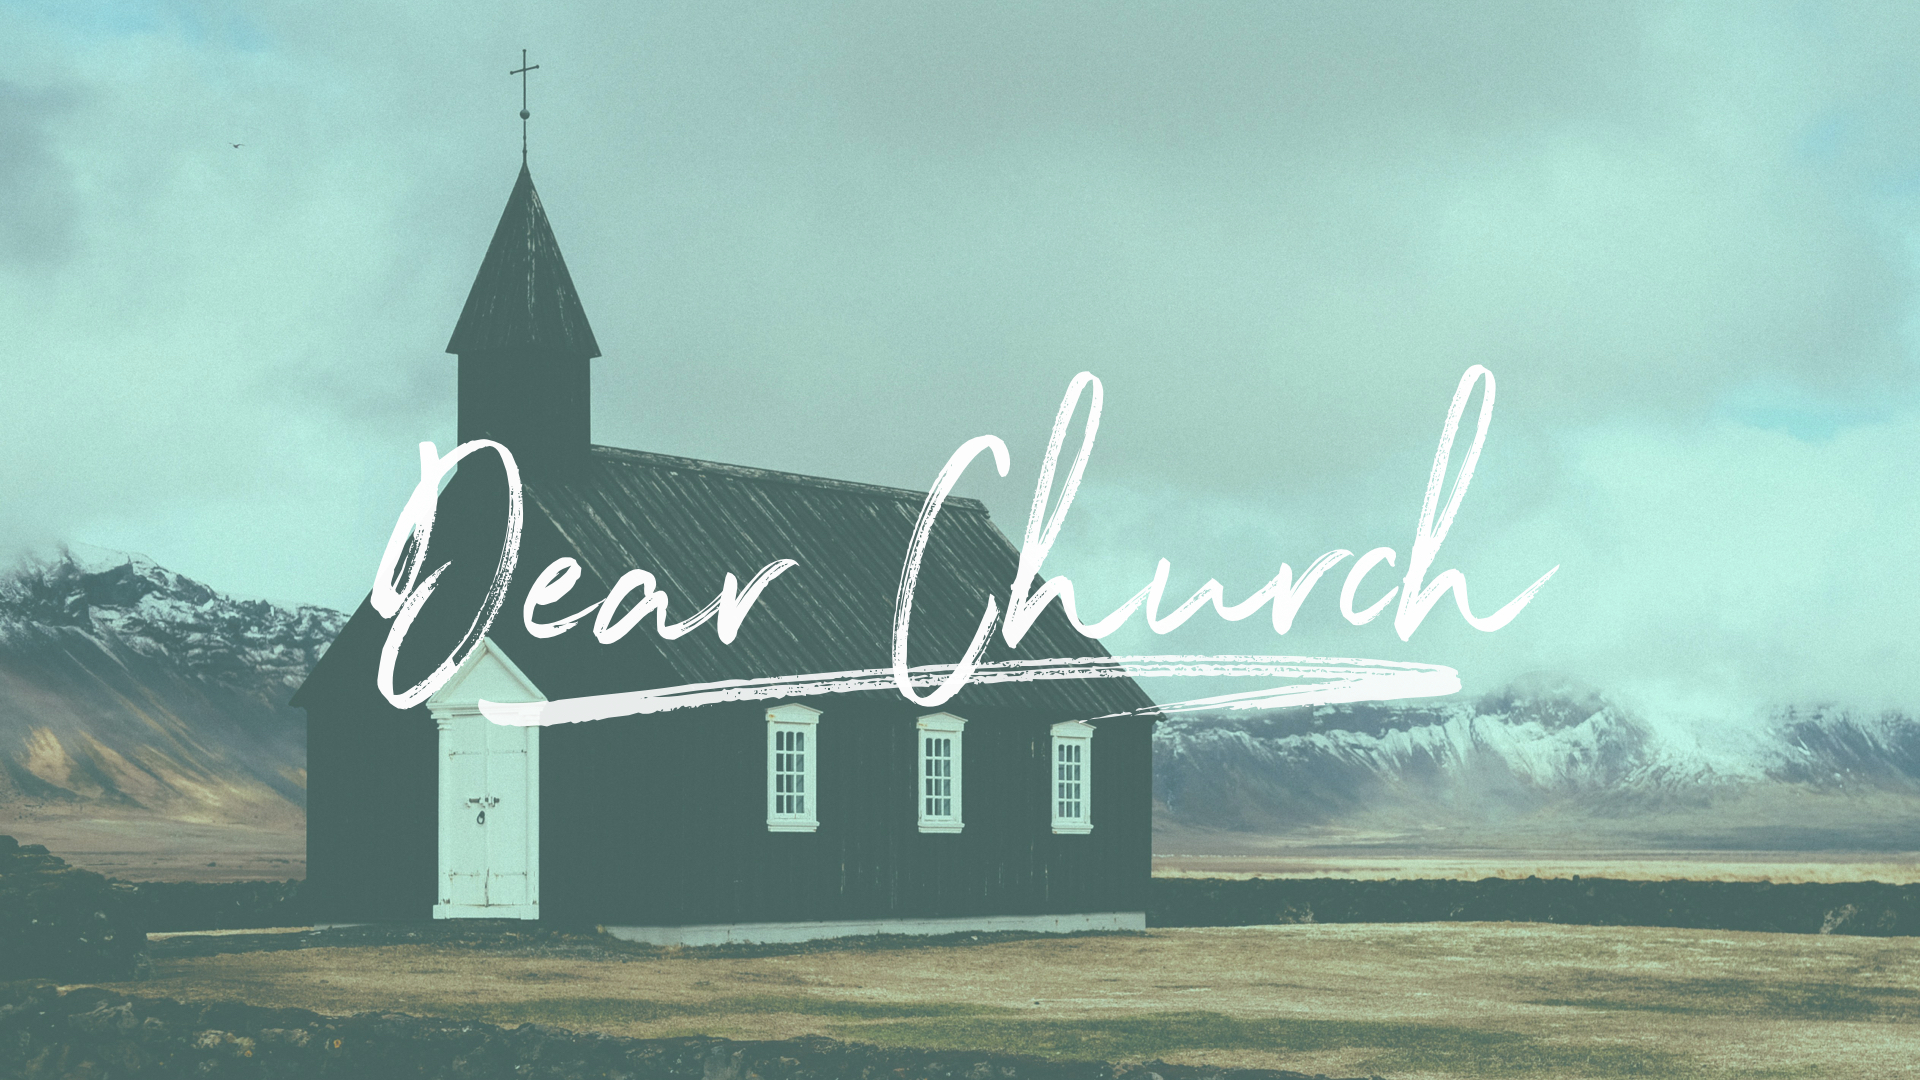 DEAR CHURCH TITLE